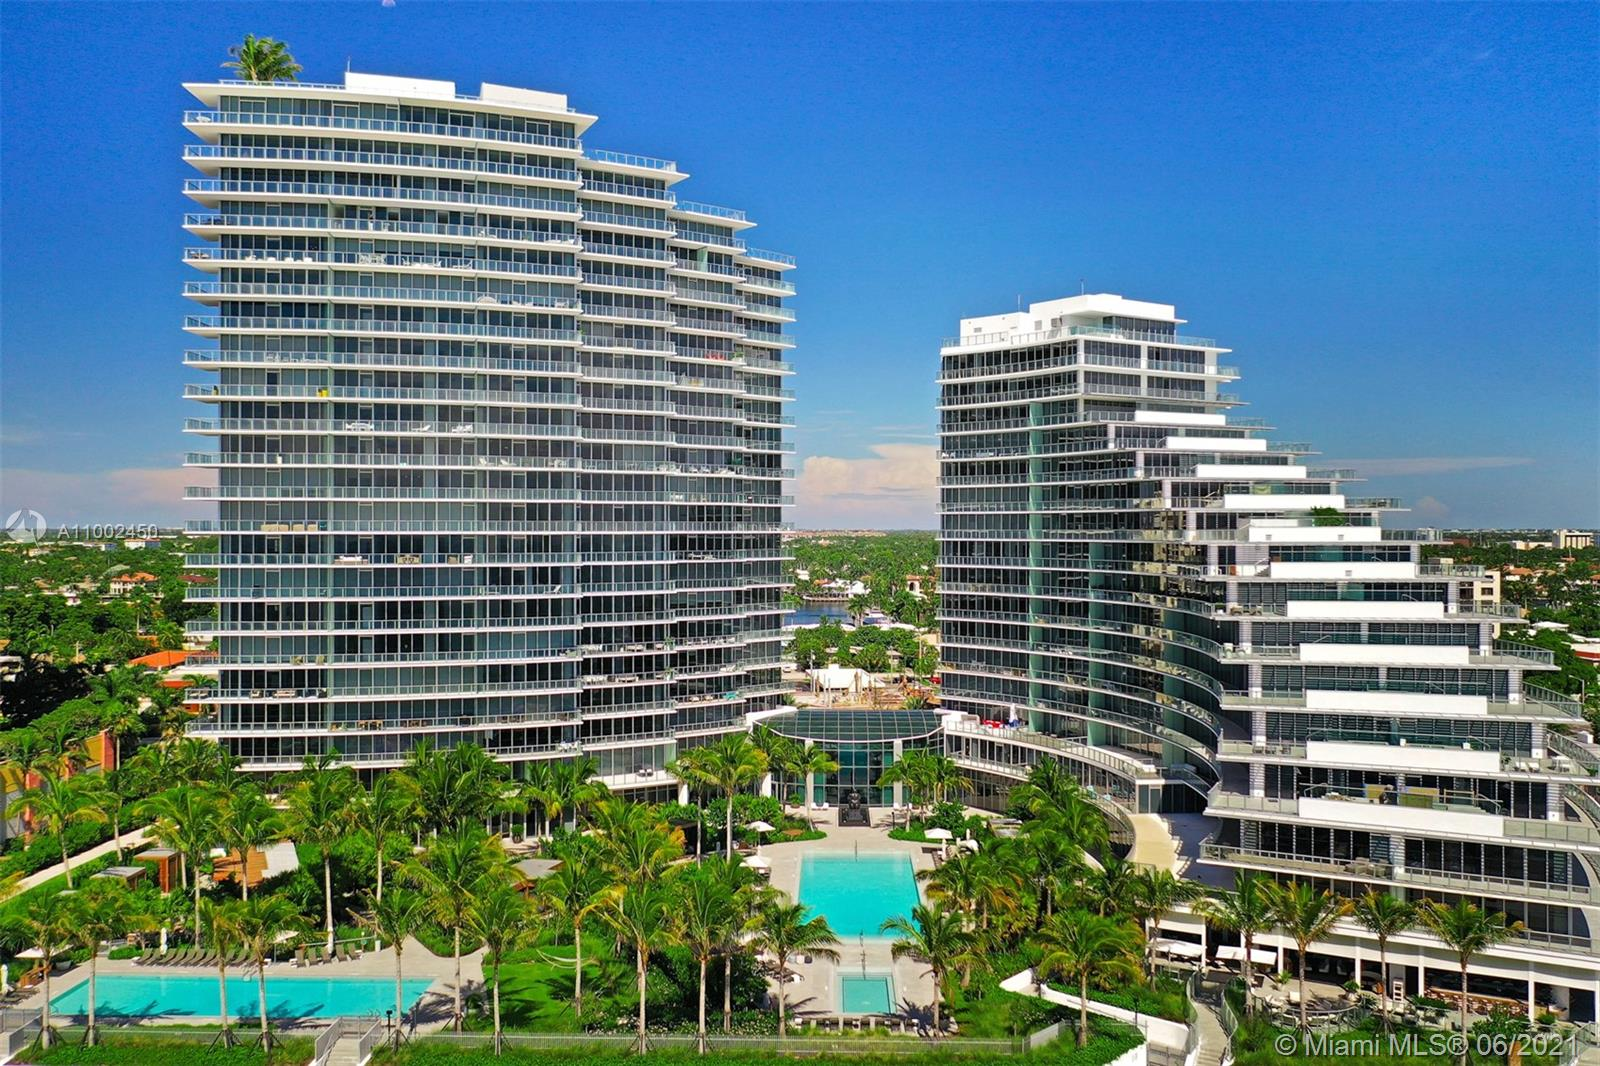 Sea Ranch Villas, 2200 N Ocean Blvd Unit N604, Fort Lauderdale, Florida 33305